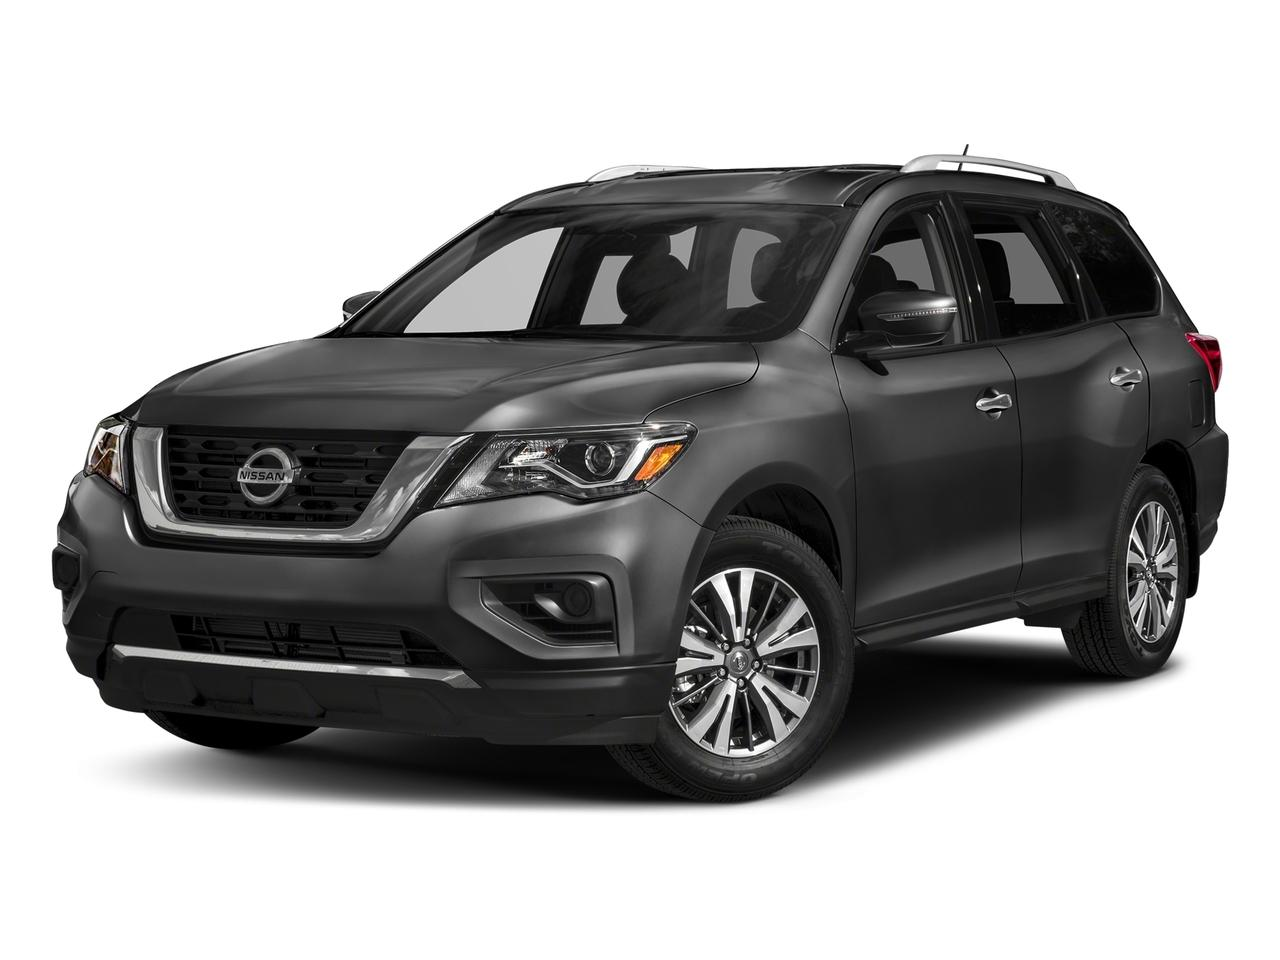 2017 Nissan Pathfinder Vehicle Photo in Gulfport, MS 39503